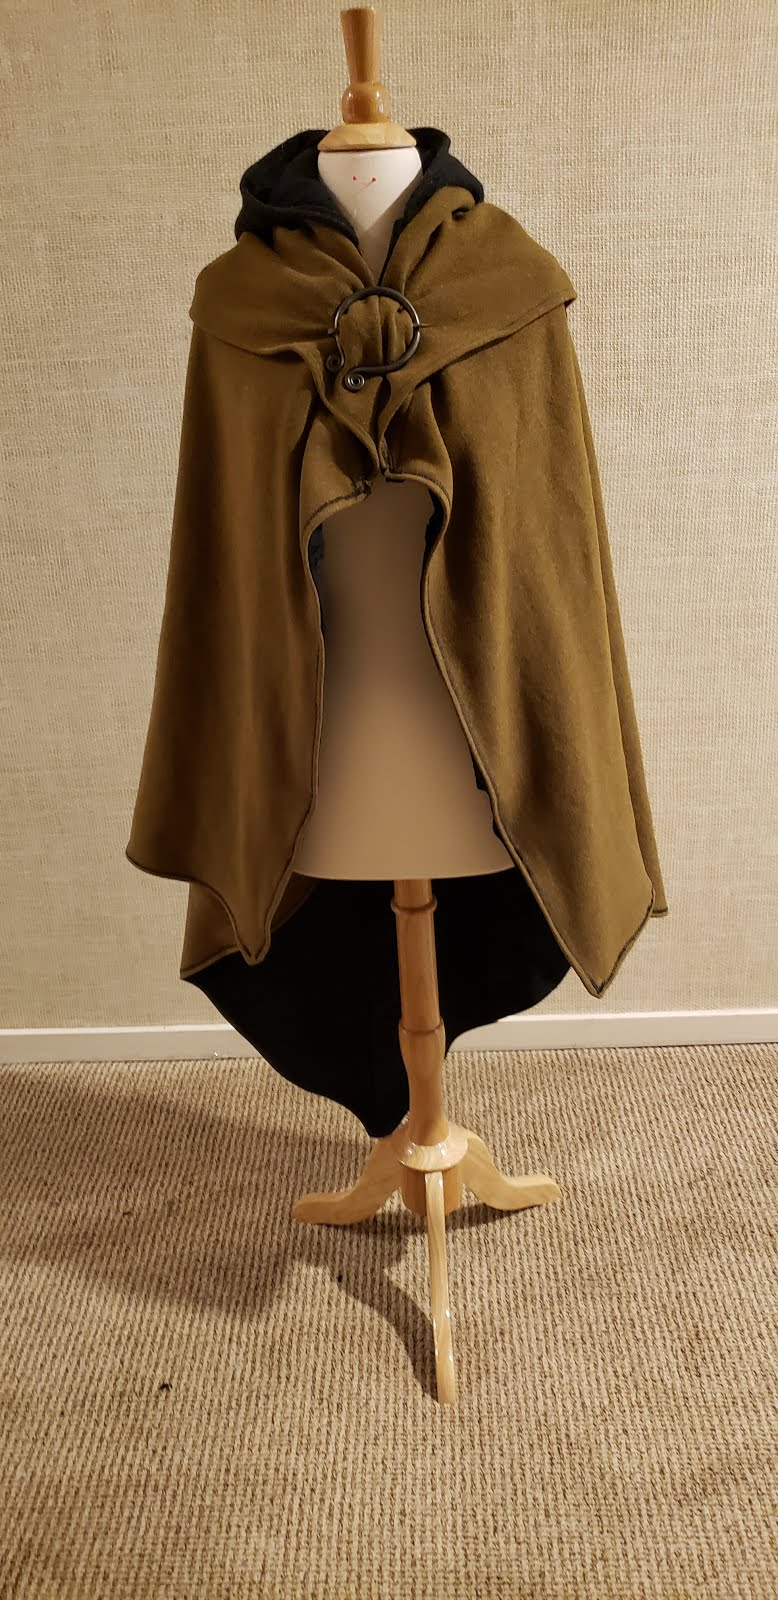 Details about  /Book a custom cloak made by McFallan MK for 10 days no puppet